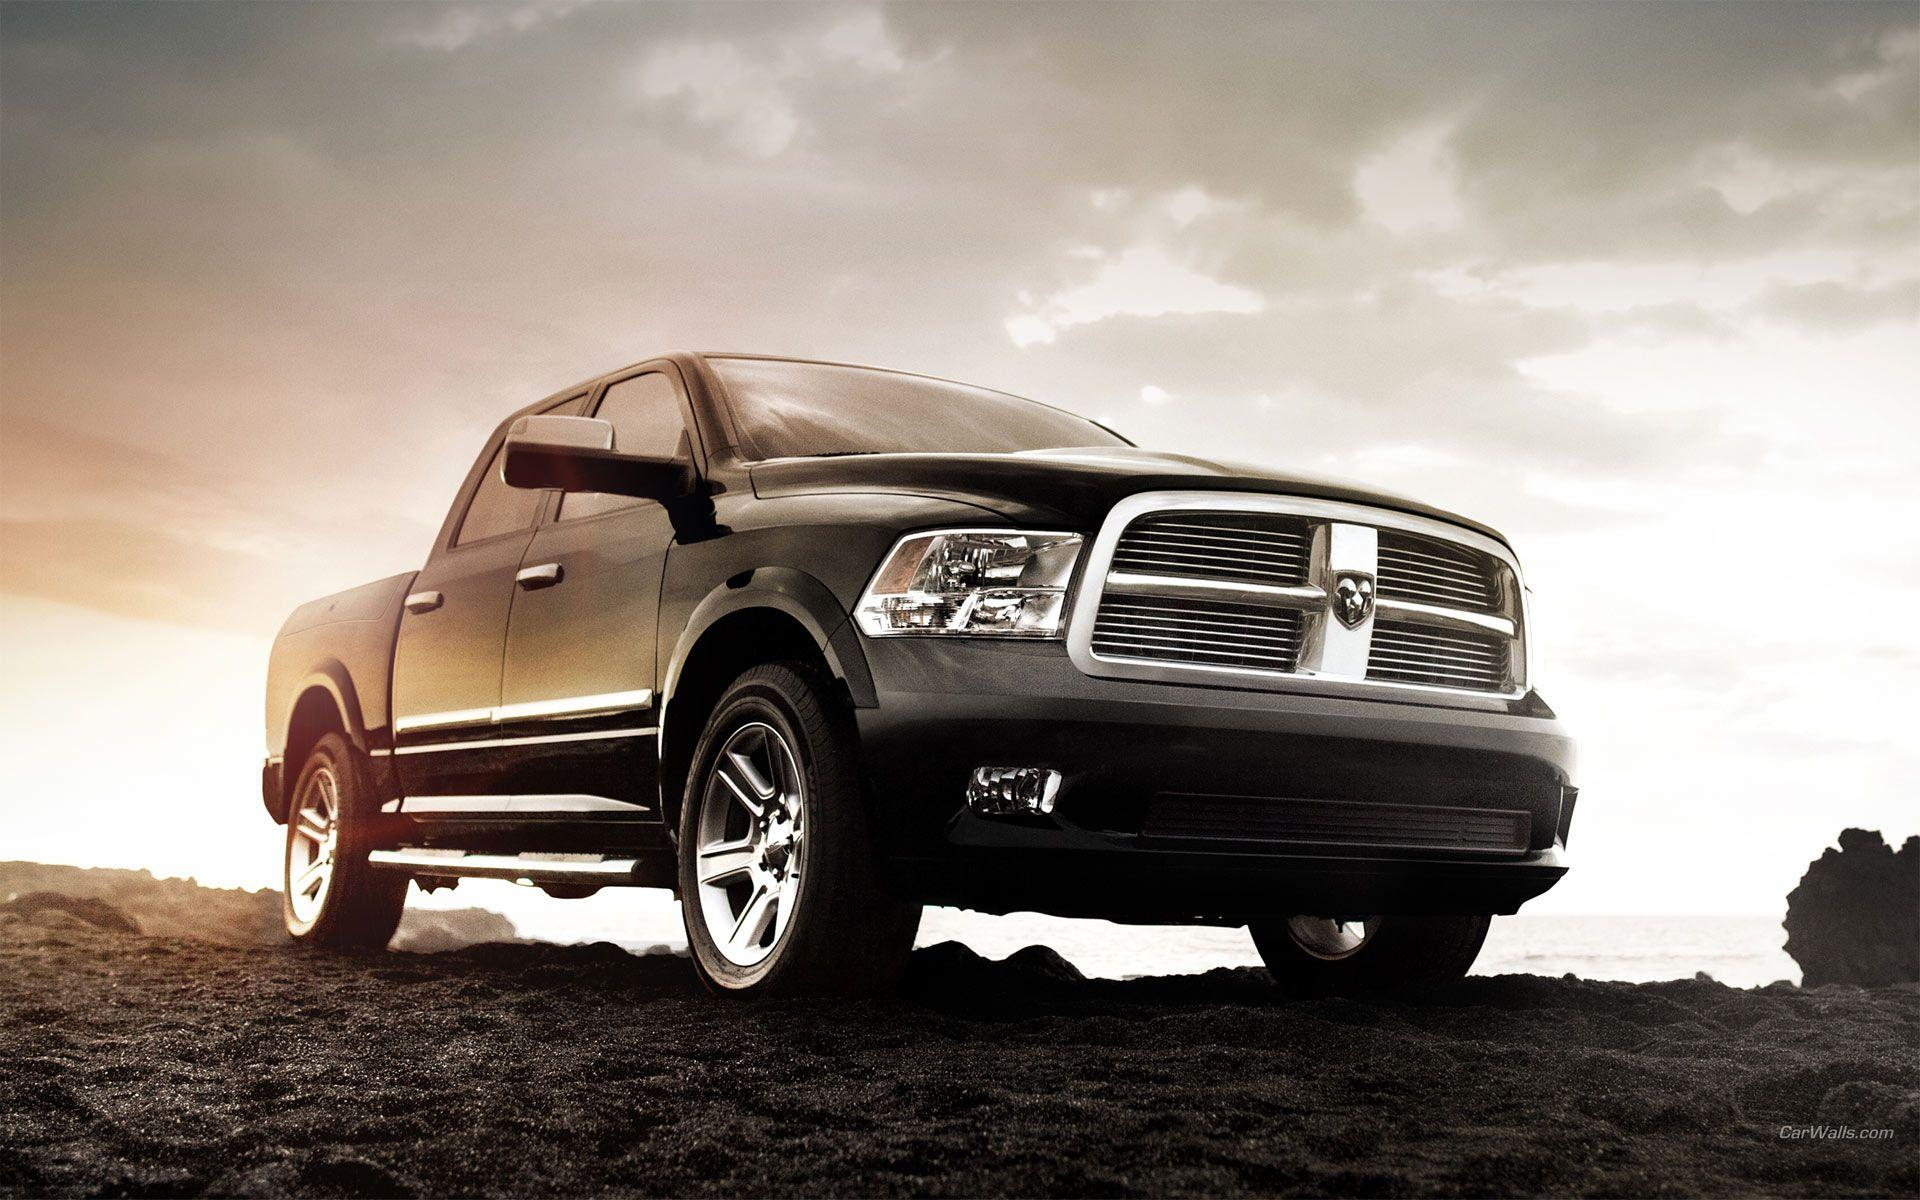 Dodge Ram 1500 Full HD Wallpaper and Background Image | 1920x1200 ...